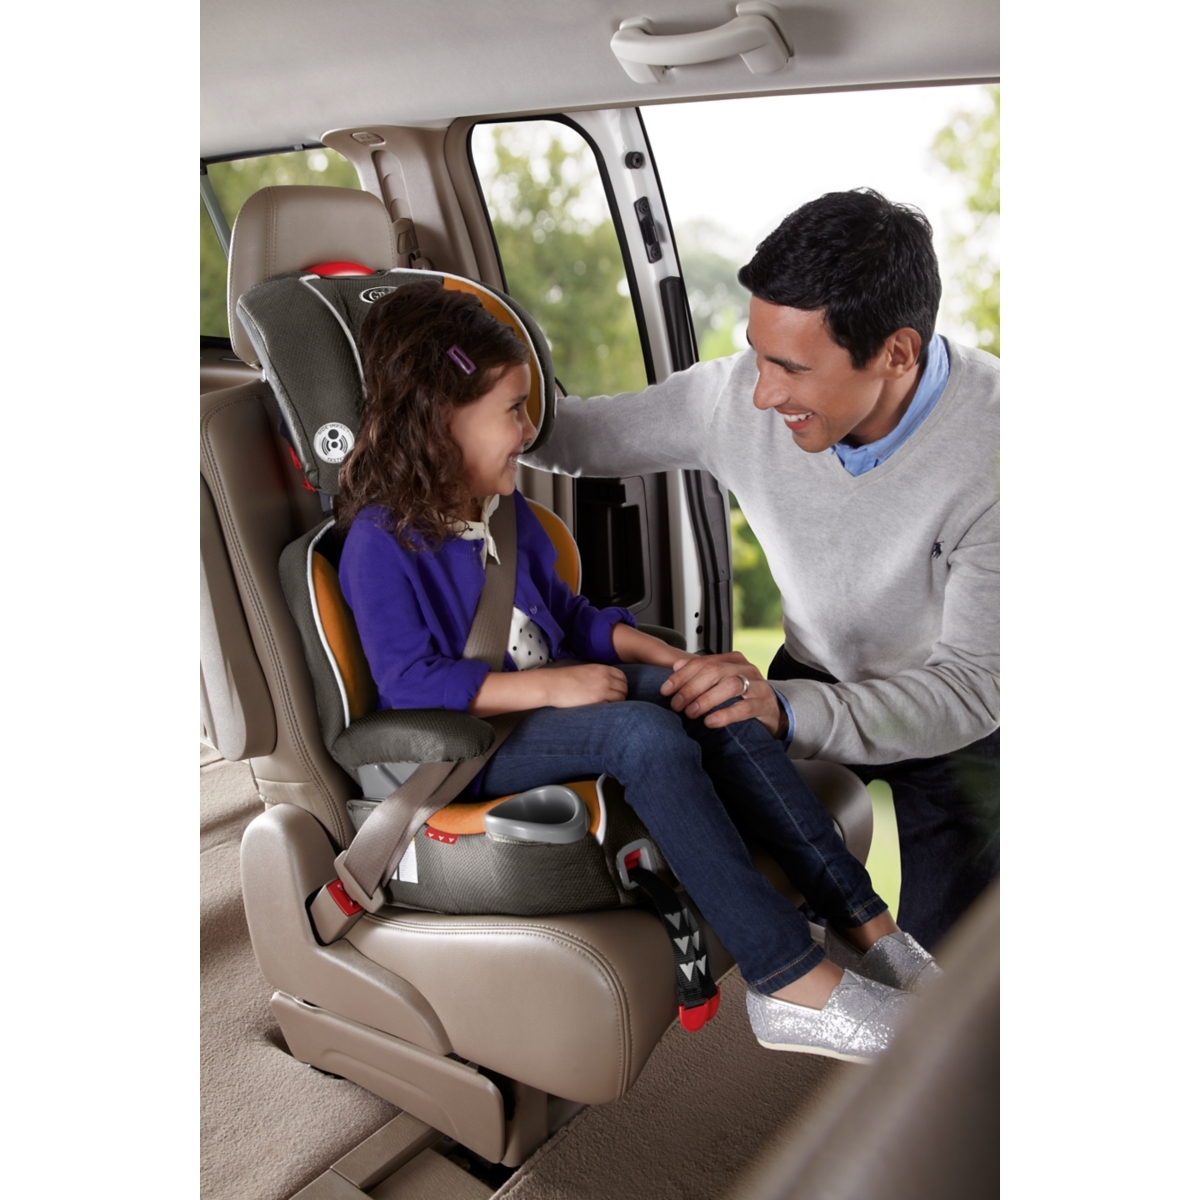 The Graco Affix Highback Booster Seat With Latch System Safely Transports Your Kid From 30 100 Lbs And 38 To 57 Inches Tall